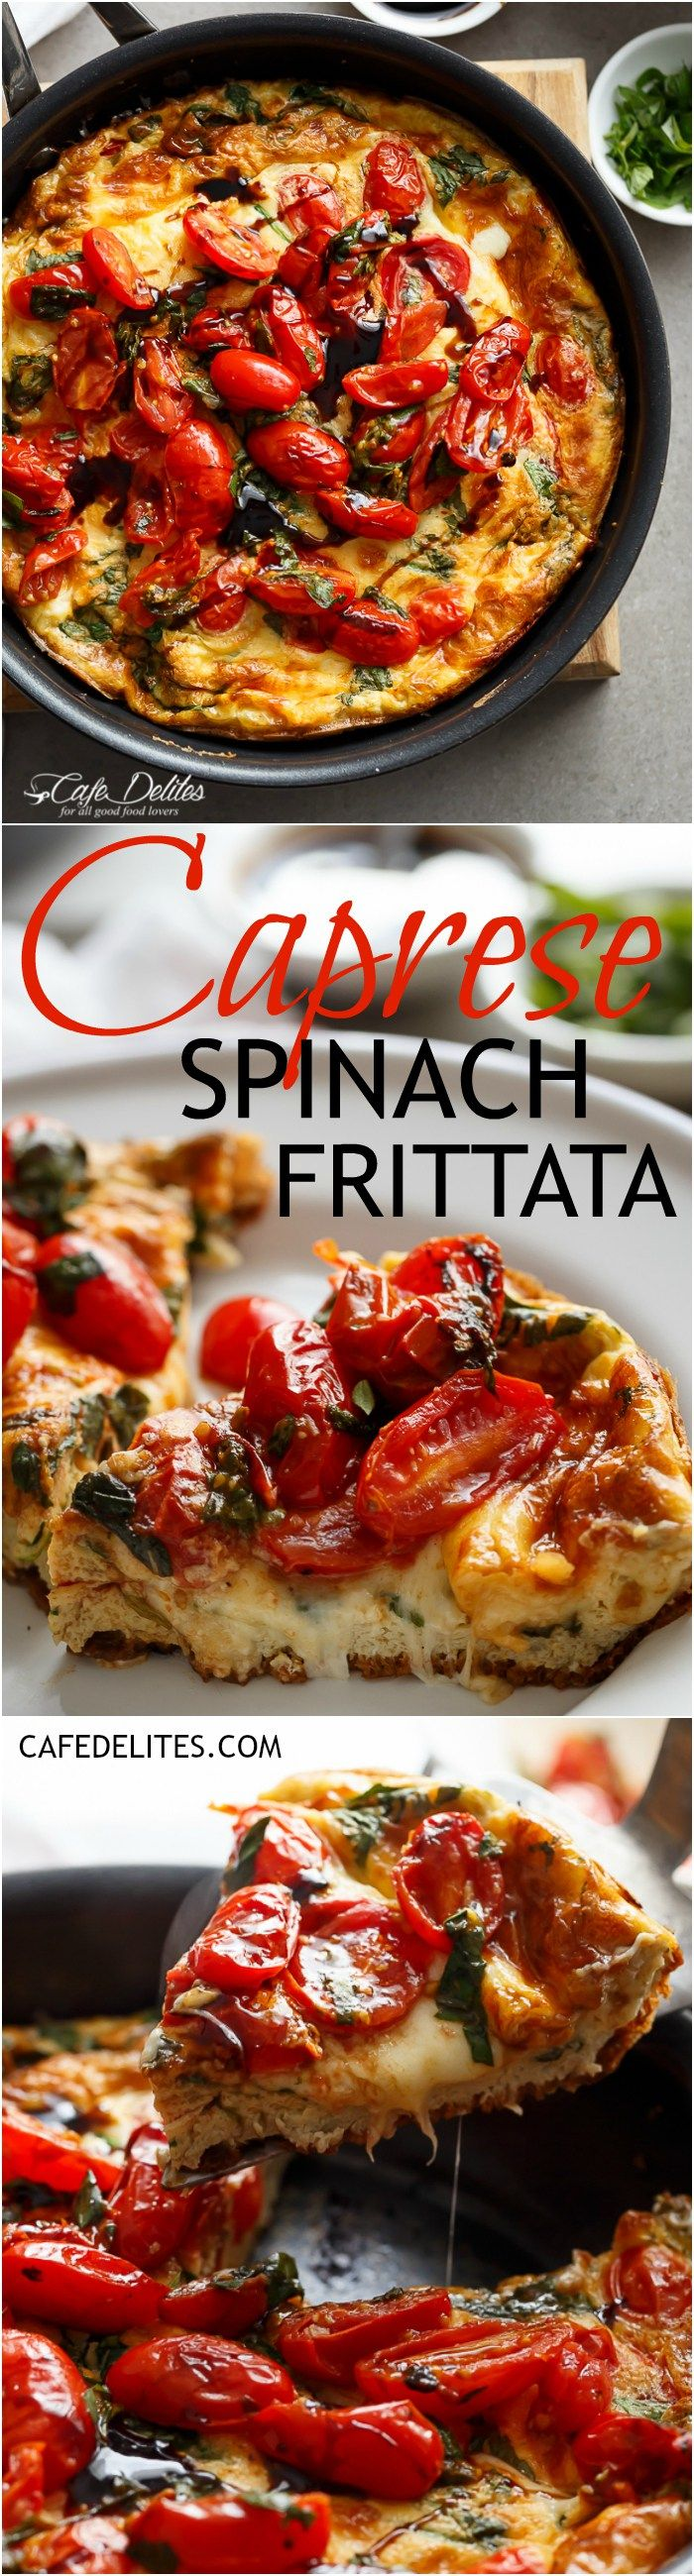 Garlic infused, Caprese Frittata with pan fried, juicy tomato and fresh basil flavors. Breakfast, brunch, lunch or dinner! Easy to make and low carb/cal! | http://cafedelites.com